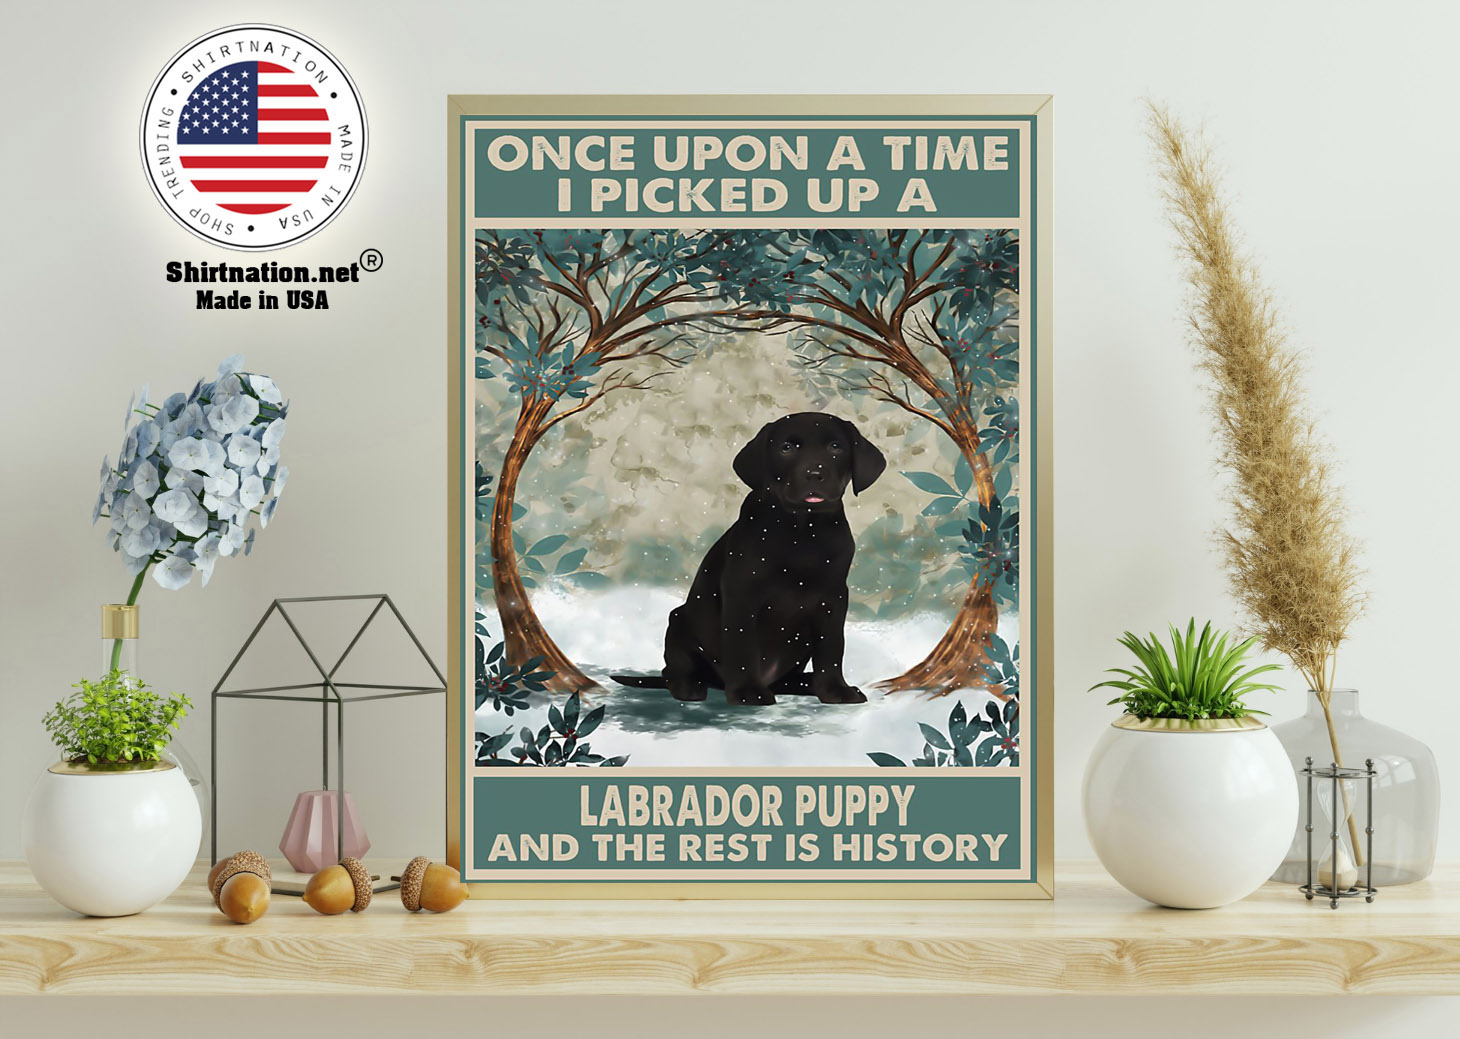 Once upon a time I picked up a labrador puppy and the rest is history poster 11